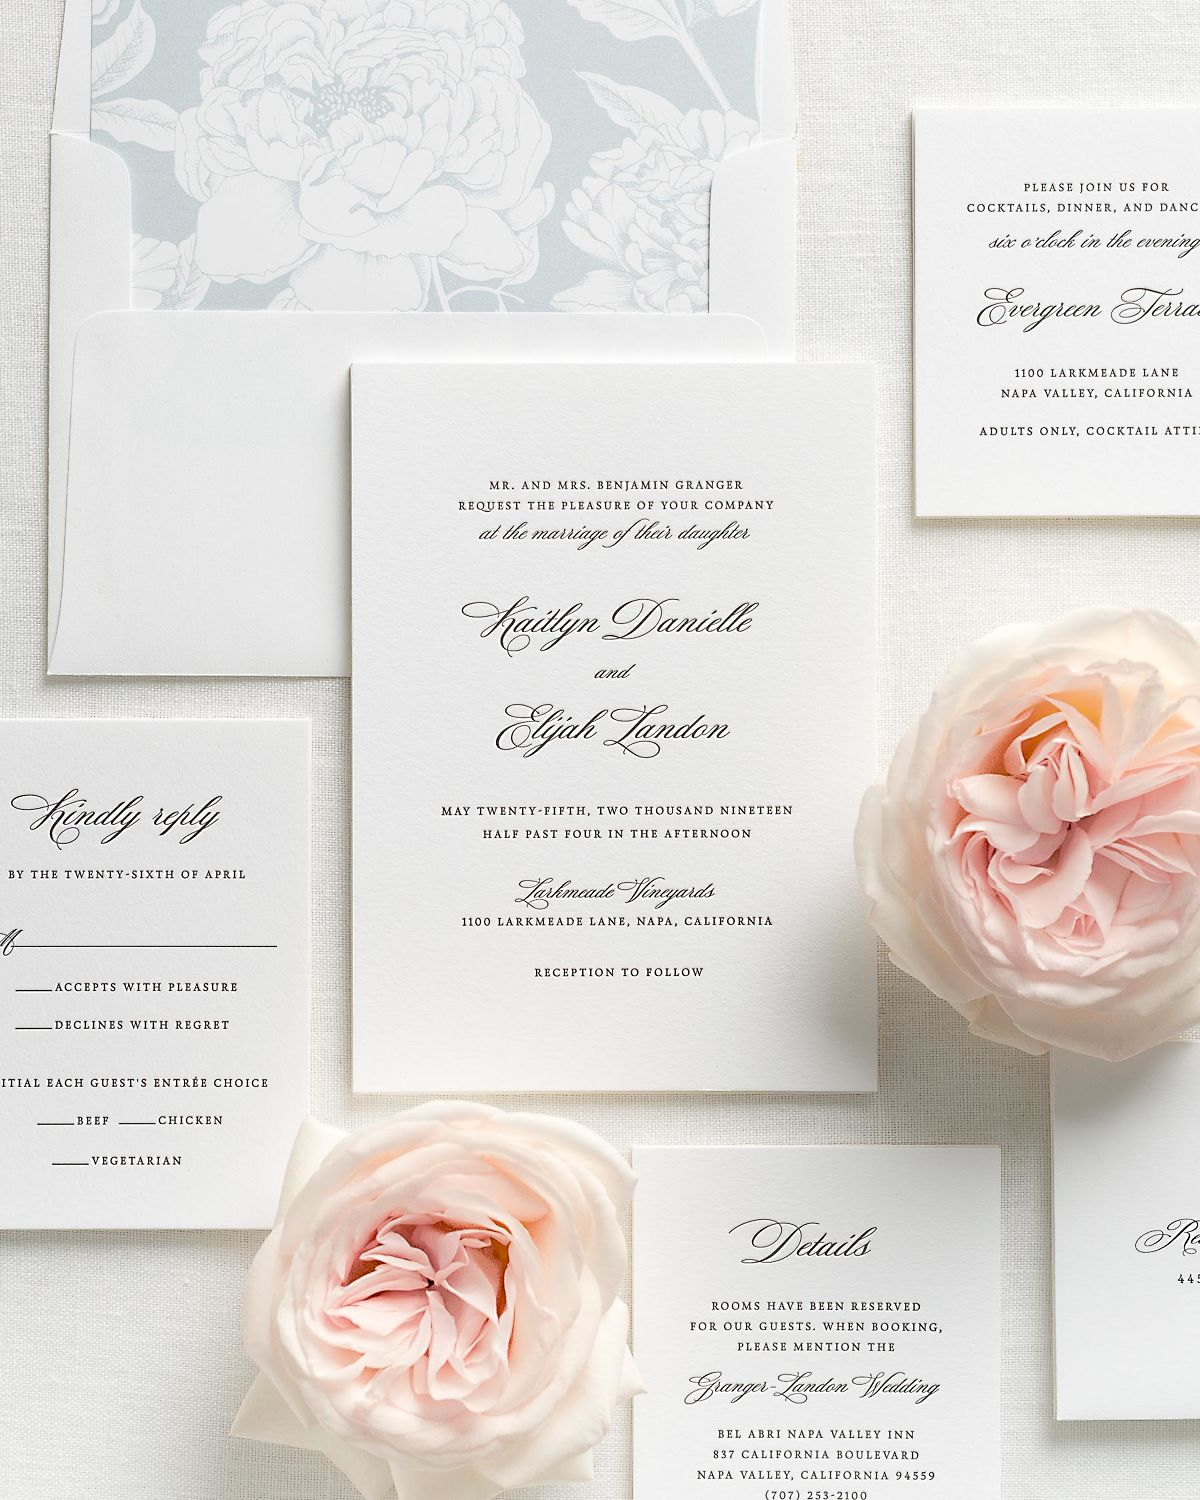 Letterpress Wedding Invitations with Cloud Blooms Envelope Liner and Matching Accessories